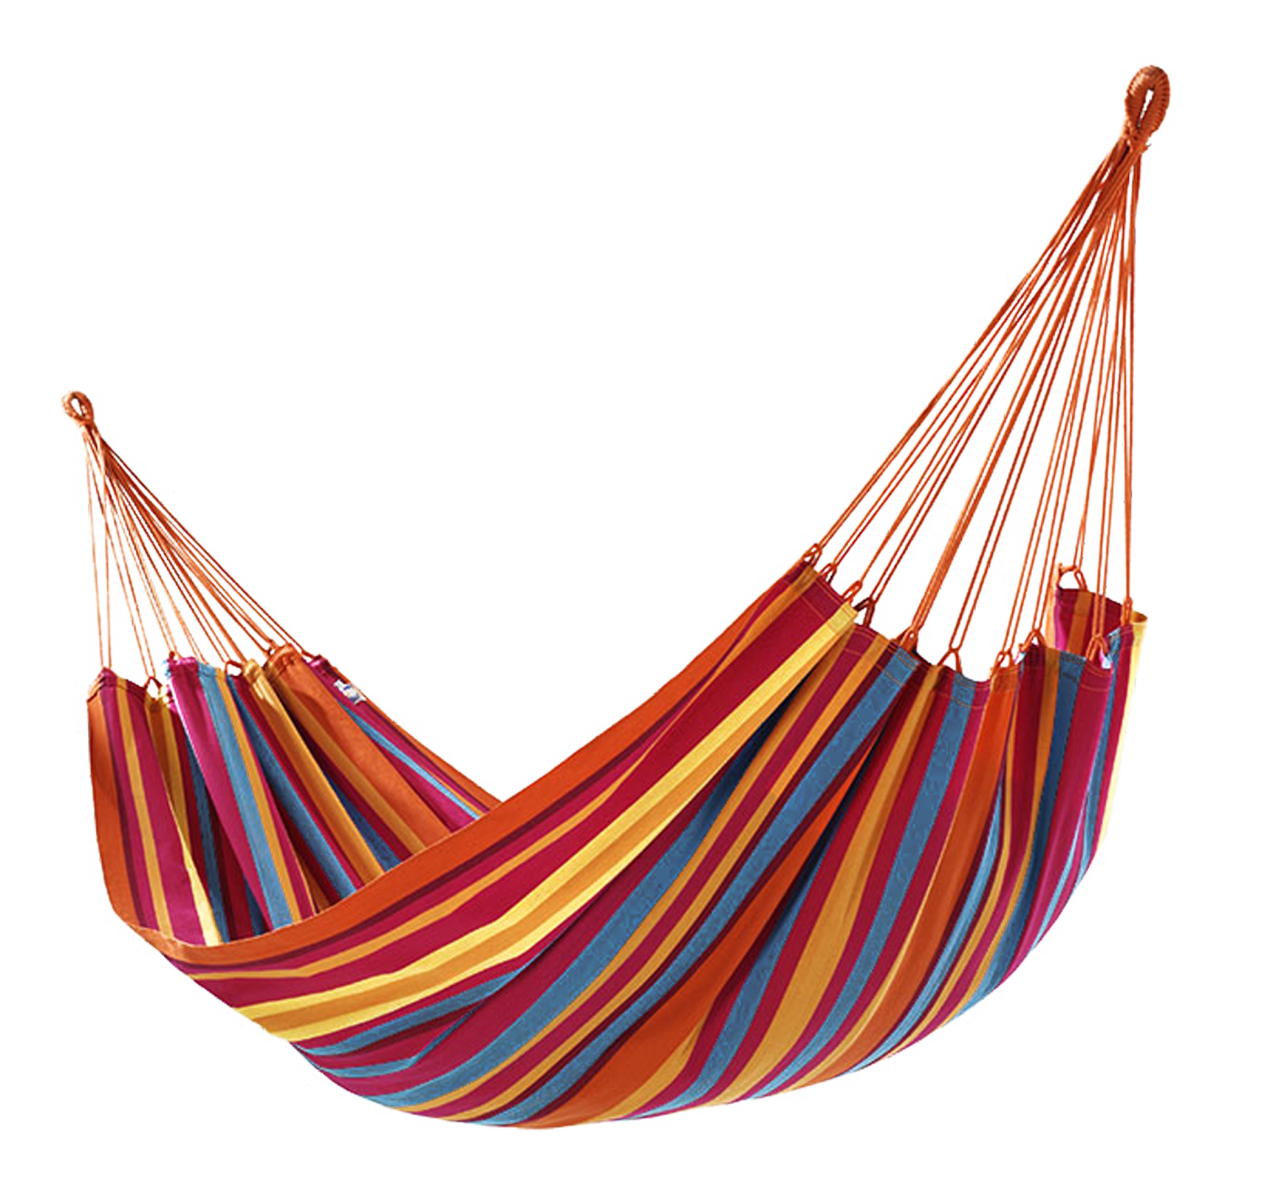 tent directly from china hammock portable suppliers  outdoor 2 people hammock garden swing set indoor swing bed relaxing swing sack max canvas hammock pin by tubesplaza nl on tubes   pinterest   clip art  rh   pinterest